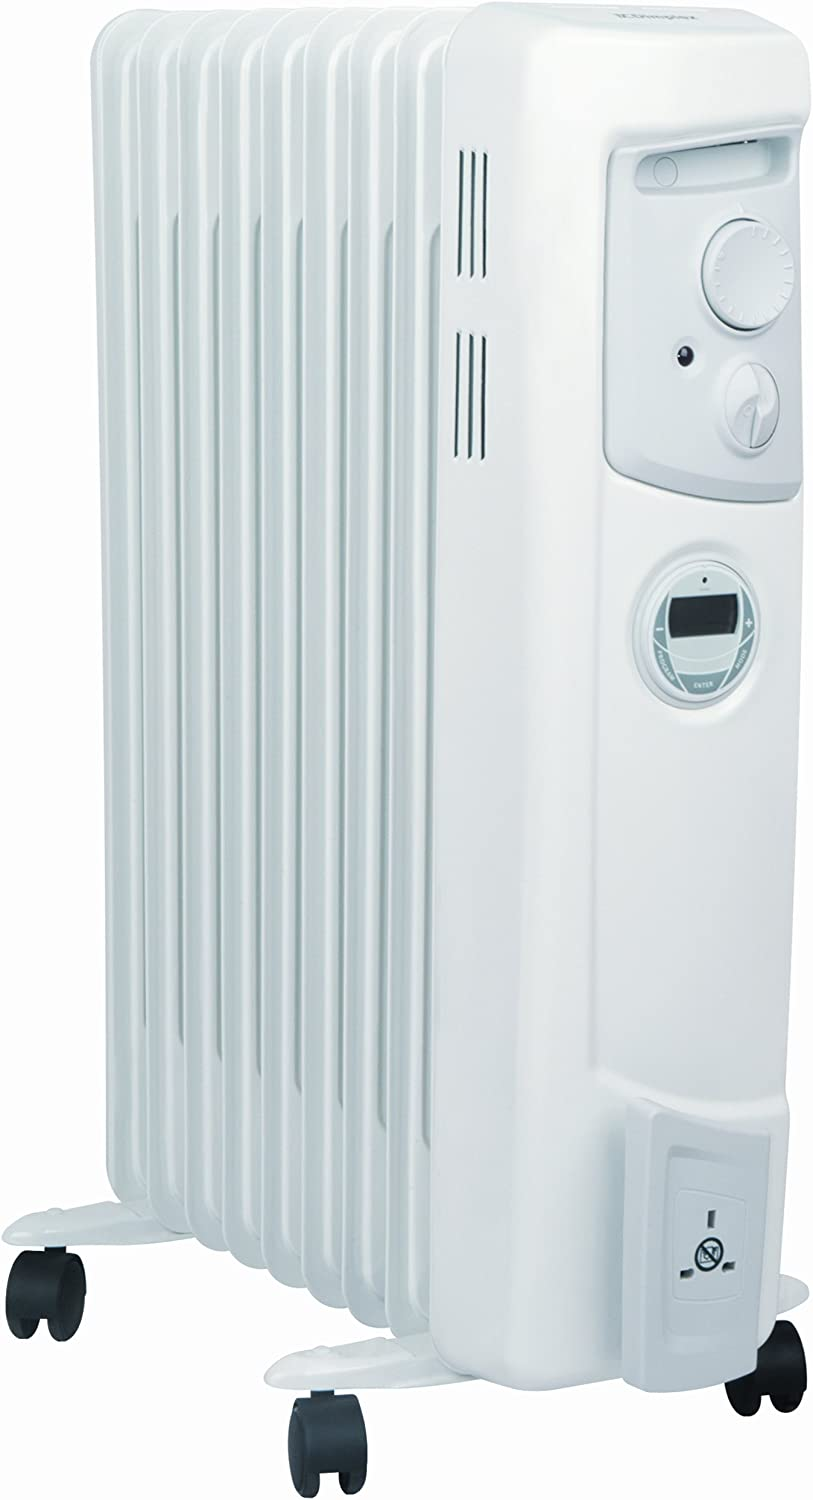 Dimplex 2 KW OFC2000Ti Electric Oil Filled Radiator Heater with Timer